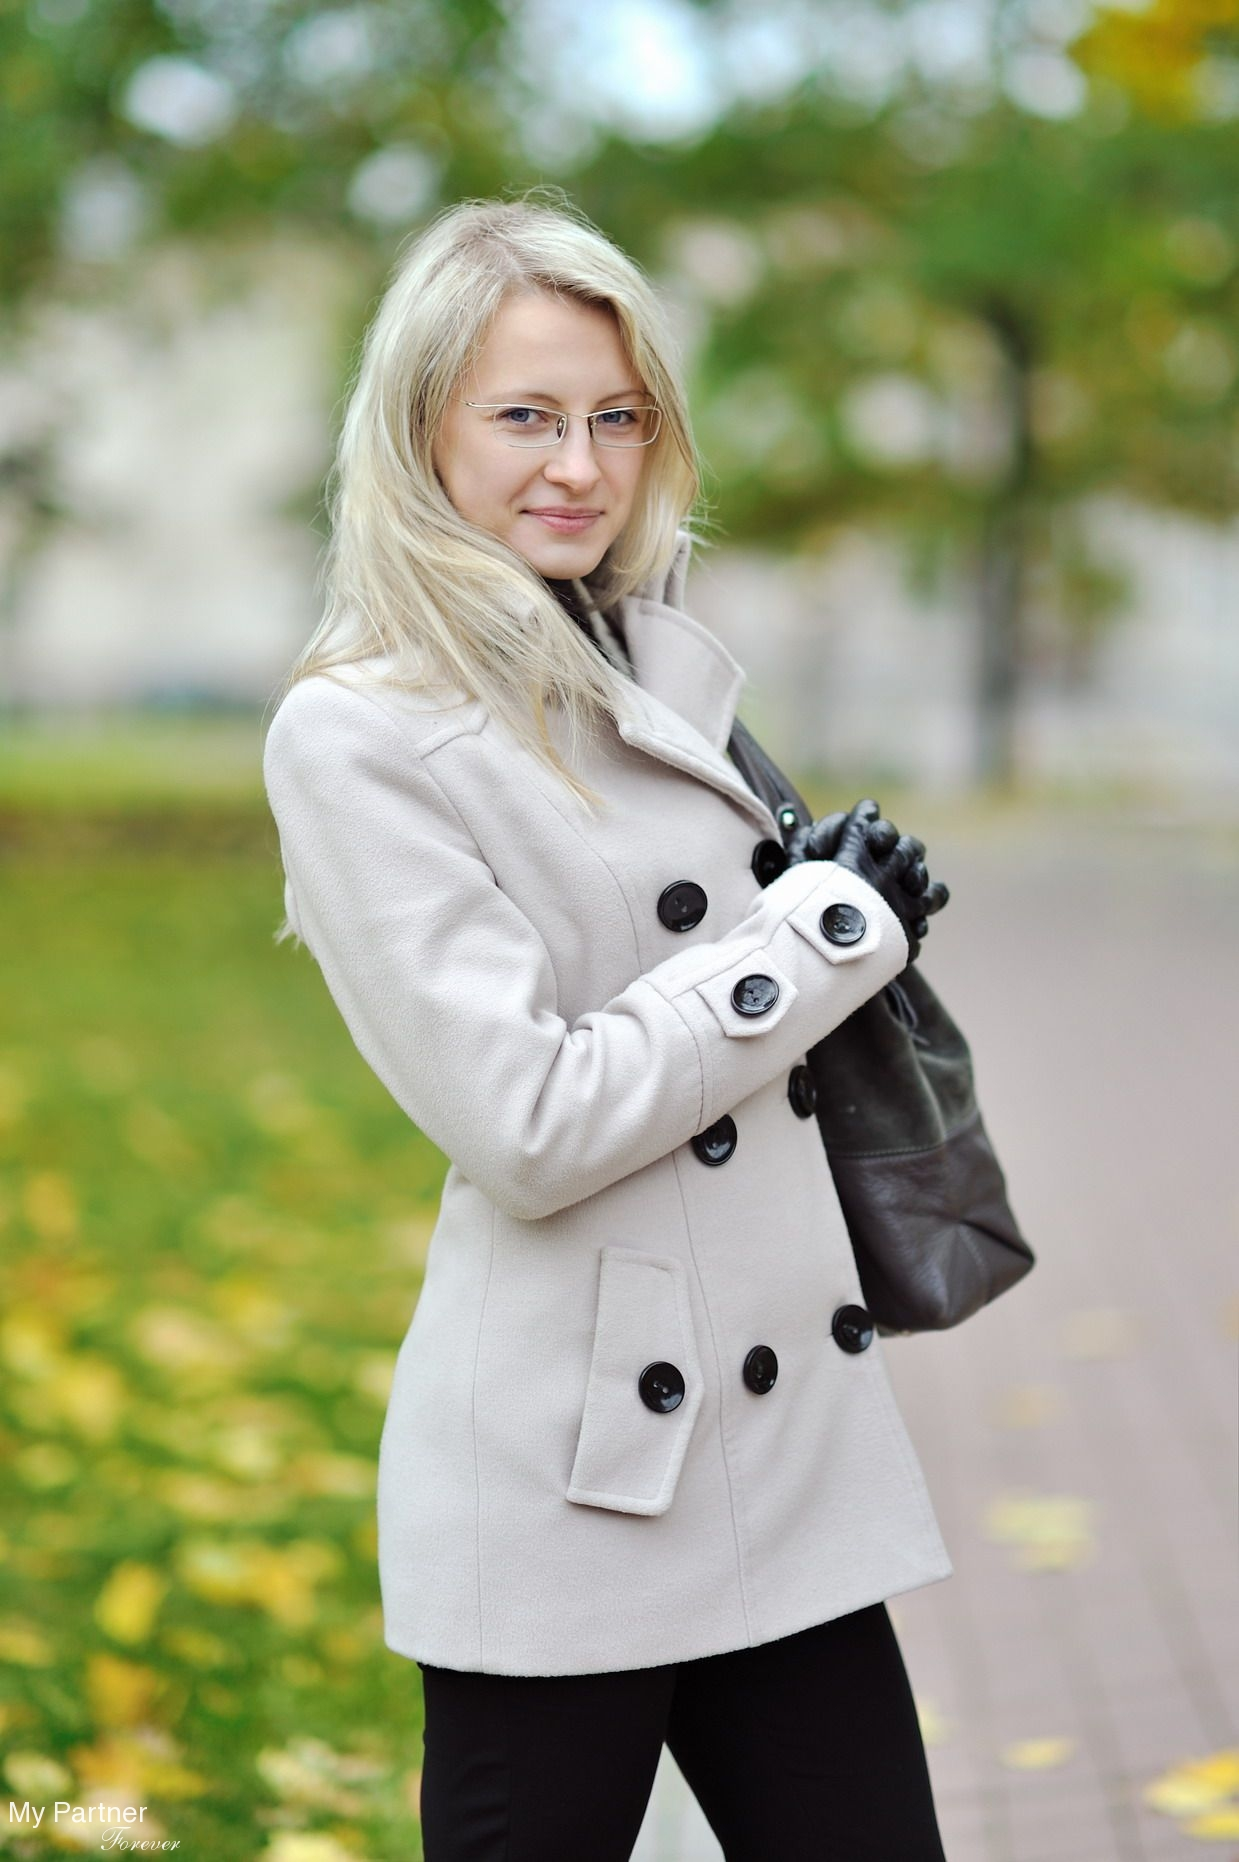 Pretty Bride from Belarus - Tatiyana from Minsk, Belarus